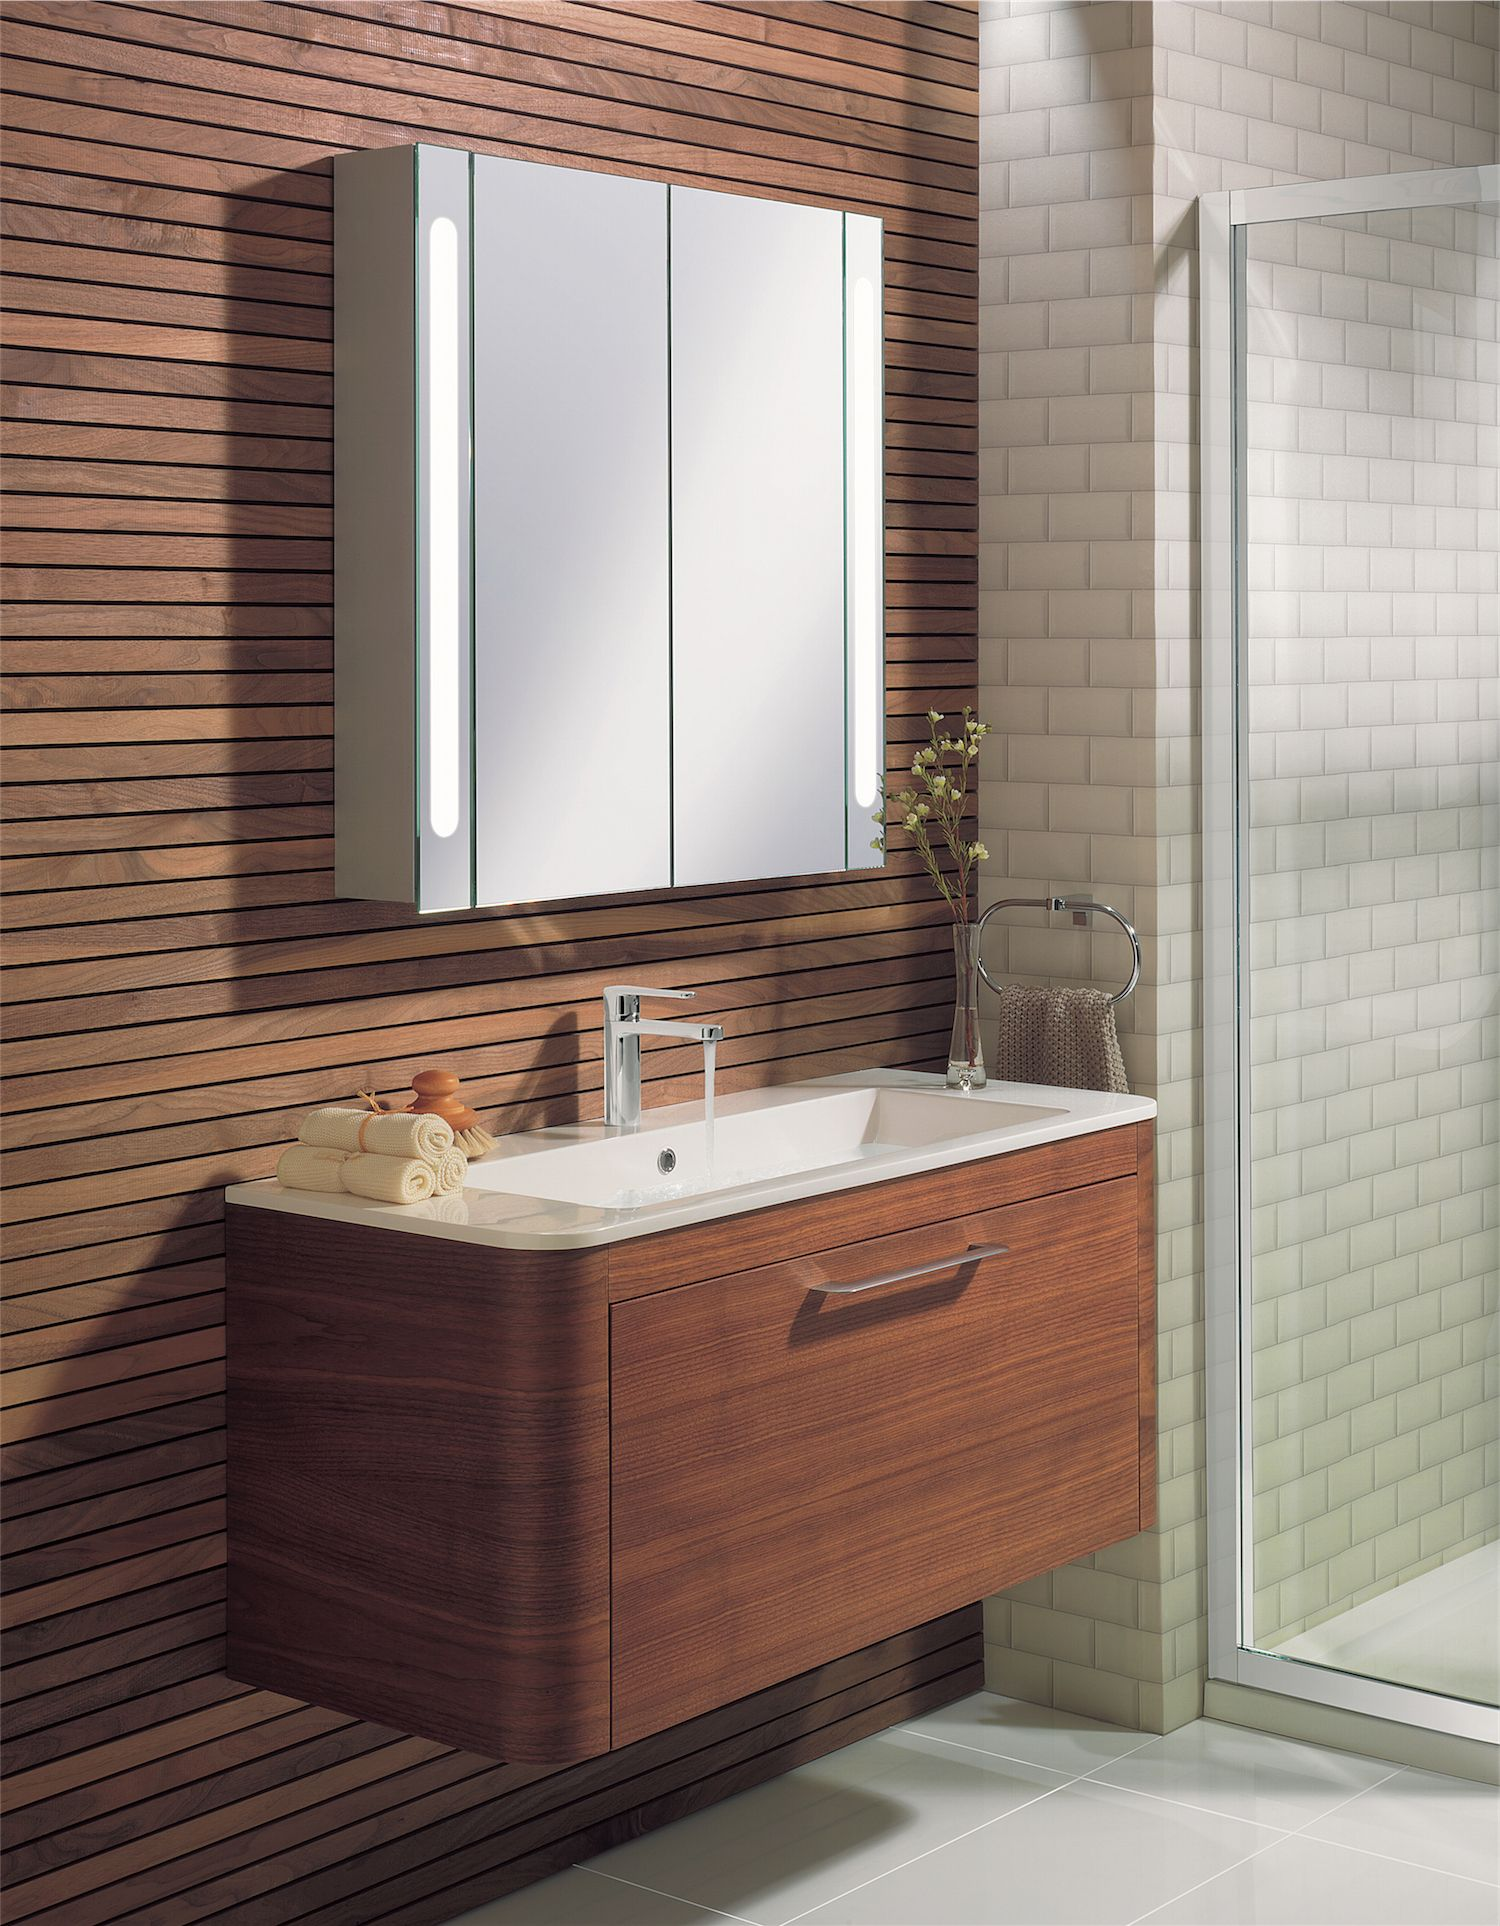 Walnut bathroom furniture uk - Celeste American Walnut Bathroom Furniture Range From Crosswater Http Www Bauhaus